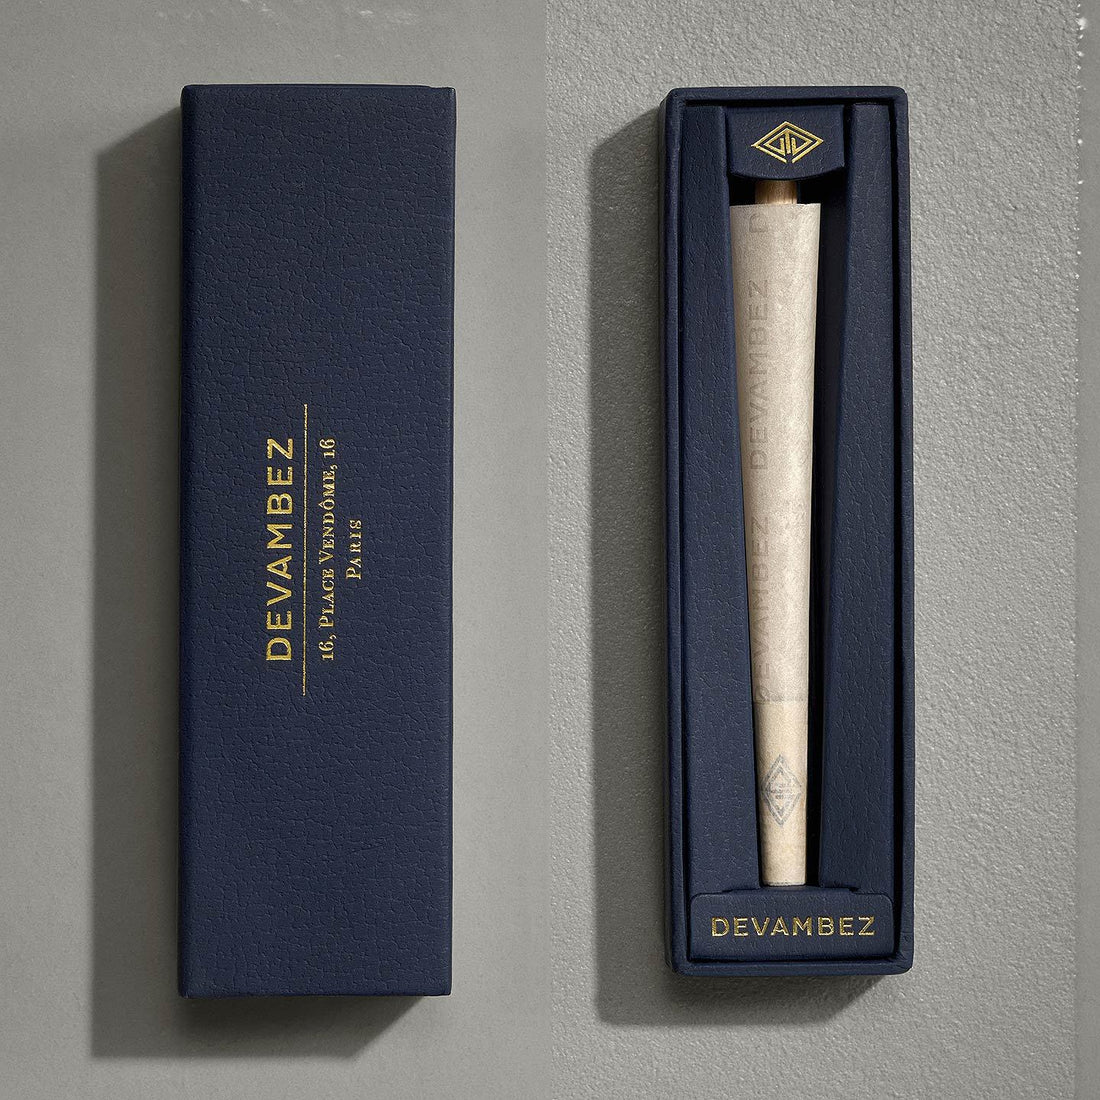 The Vendôme - Pre rolled - Devambez